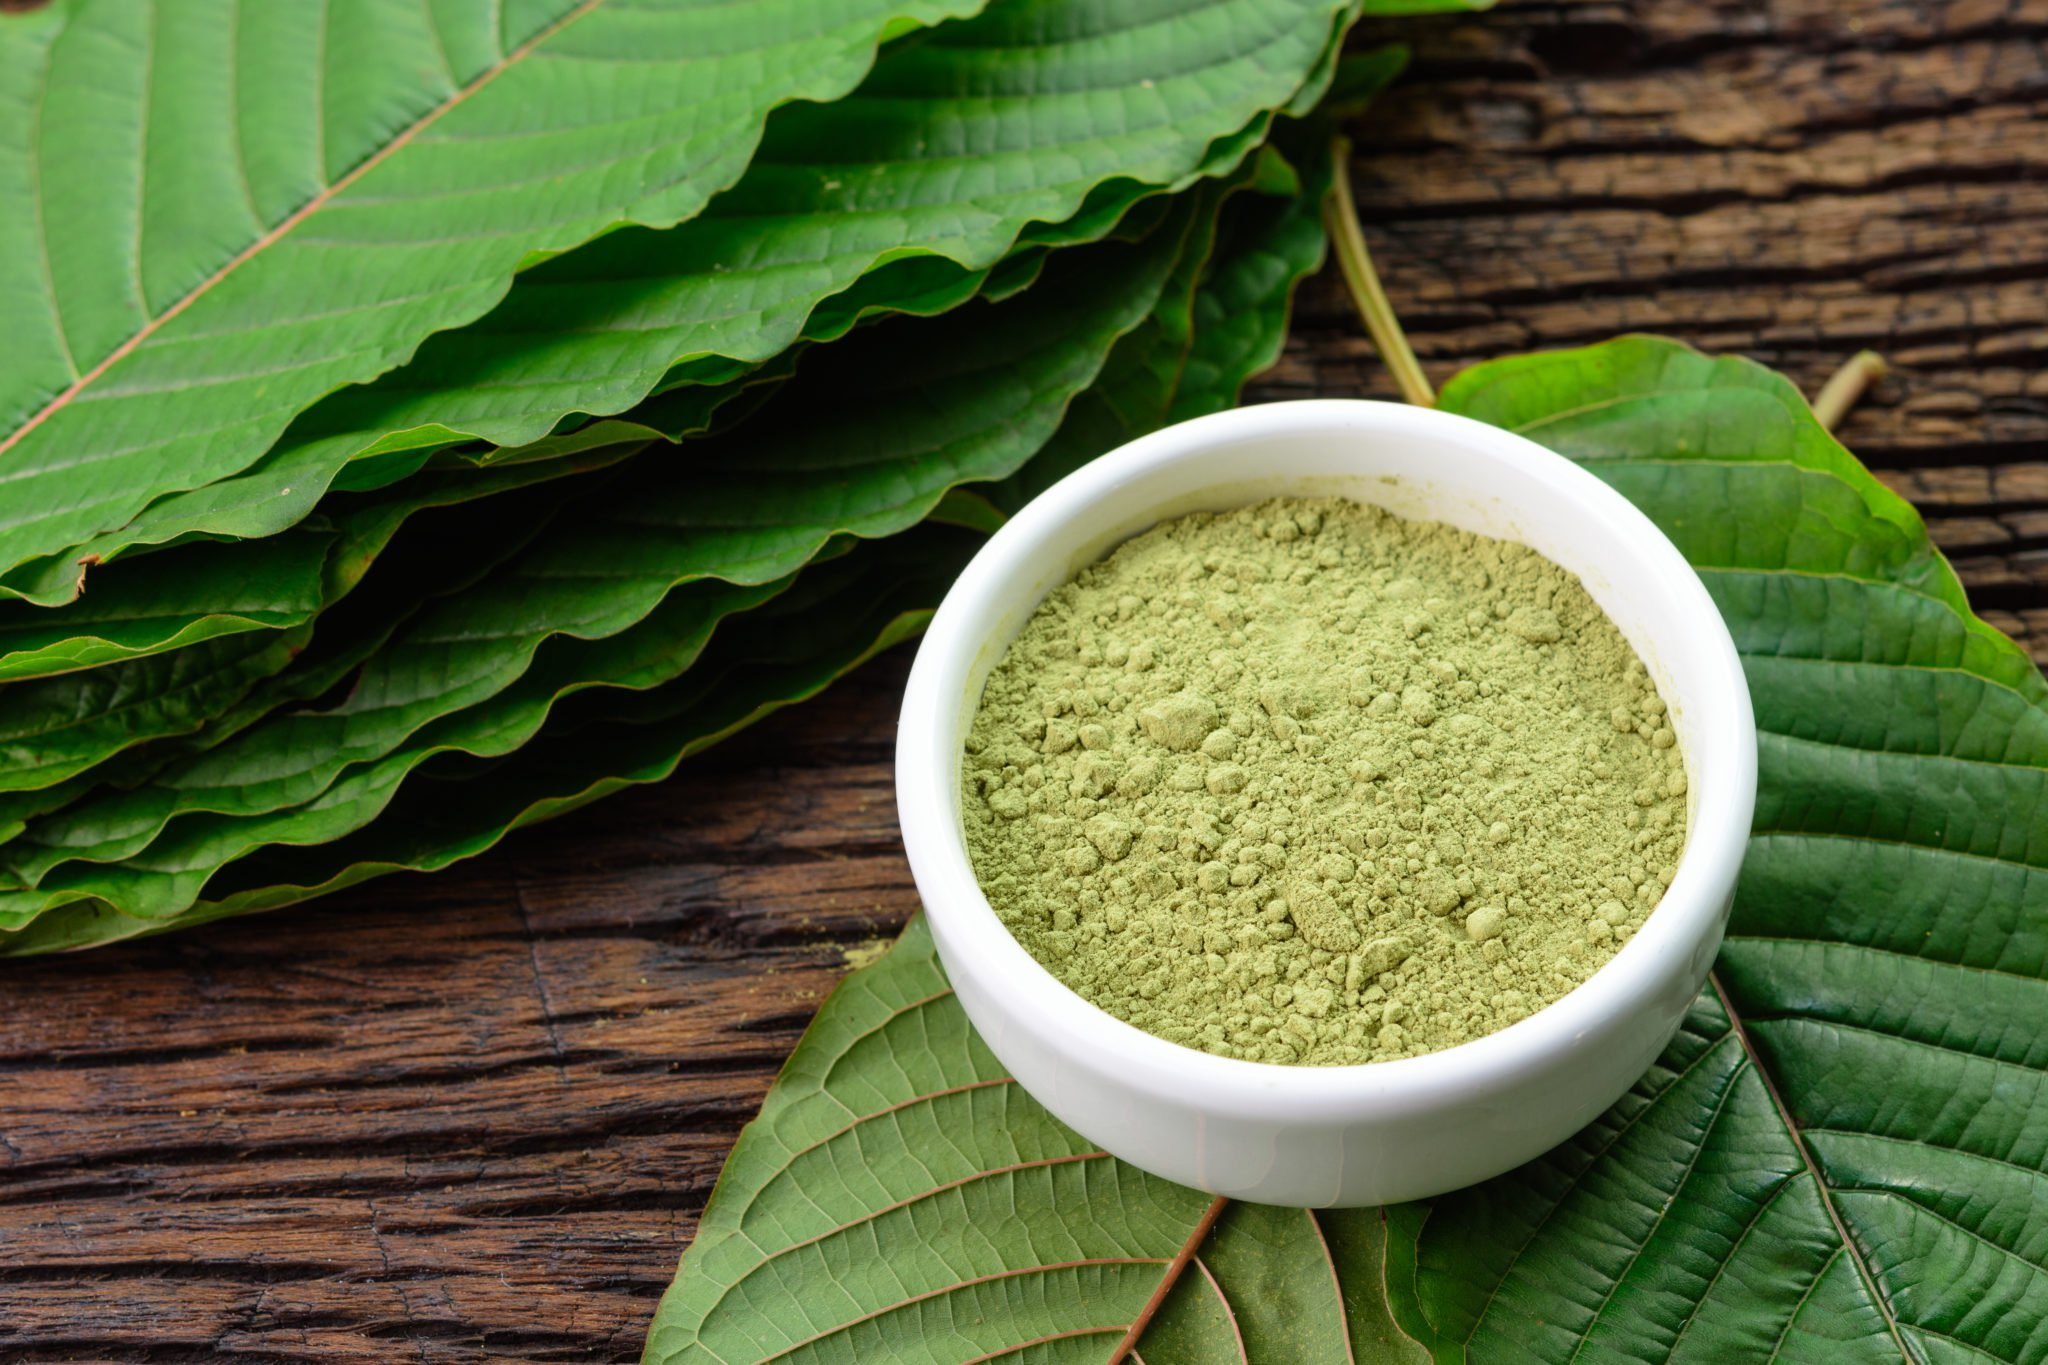 When comparing CBD vs. Kratom, one major difference is that CBD is non-addictive and appears safe even at relatively high doses, while kratom can pose risks of dependency and other side effects. Photo: Powdered kratom in a white bowl sits atop whole mitragyna speciosa leaves.